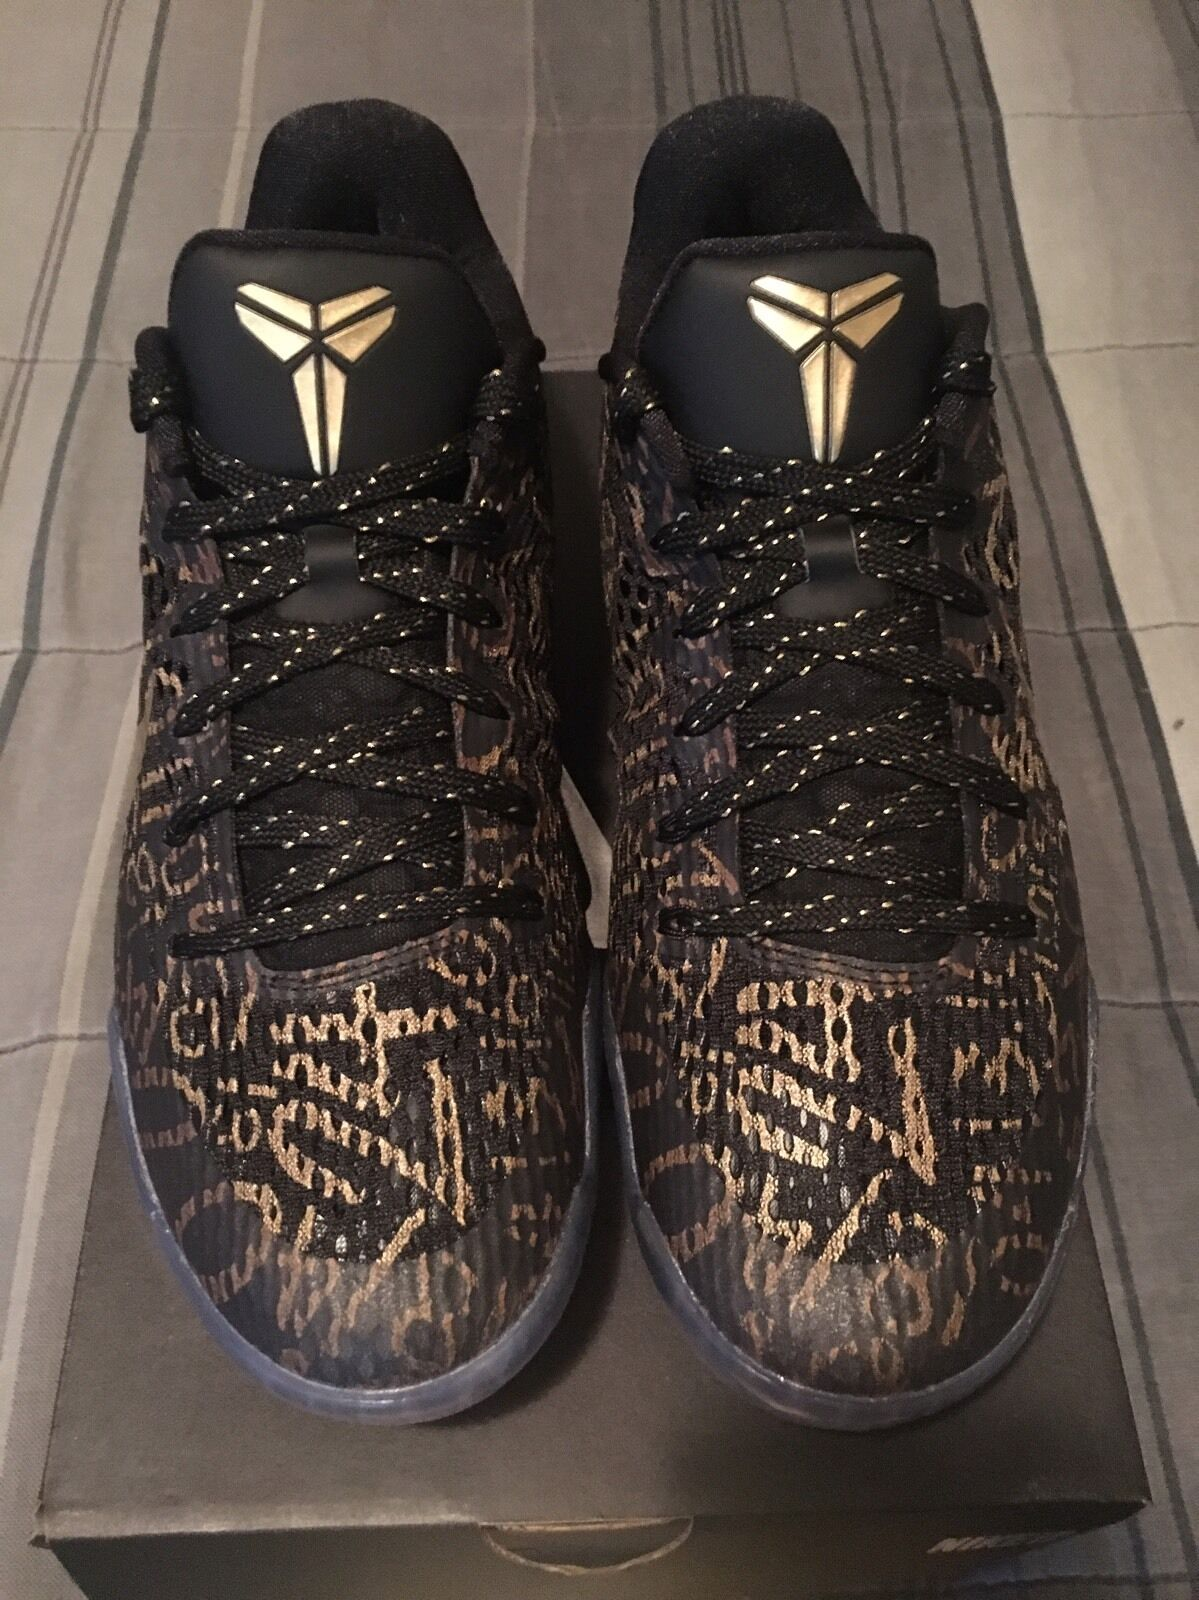 2016 Mamba Day Nike iD Kobe Bryant Final Game 60 Pts Sz 10.5